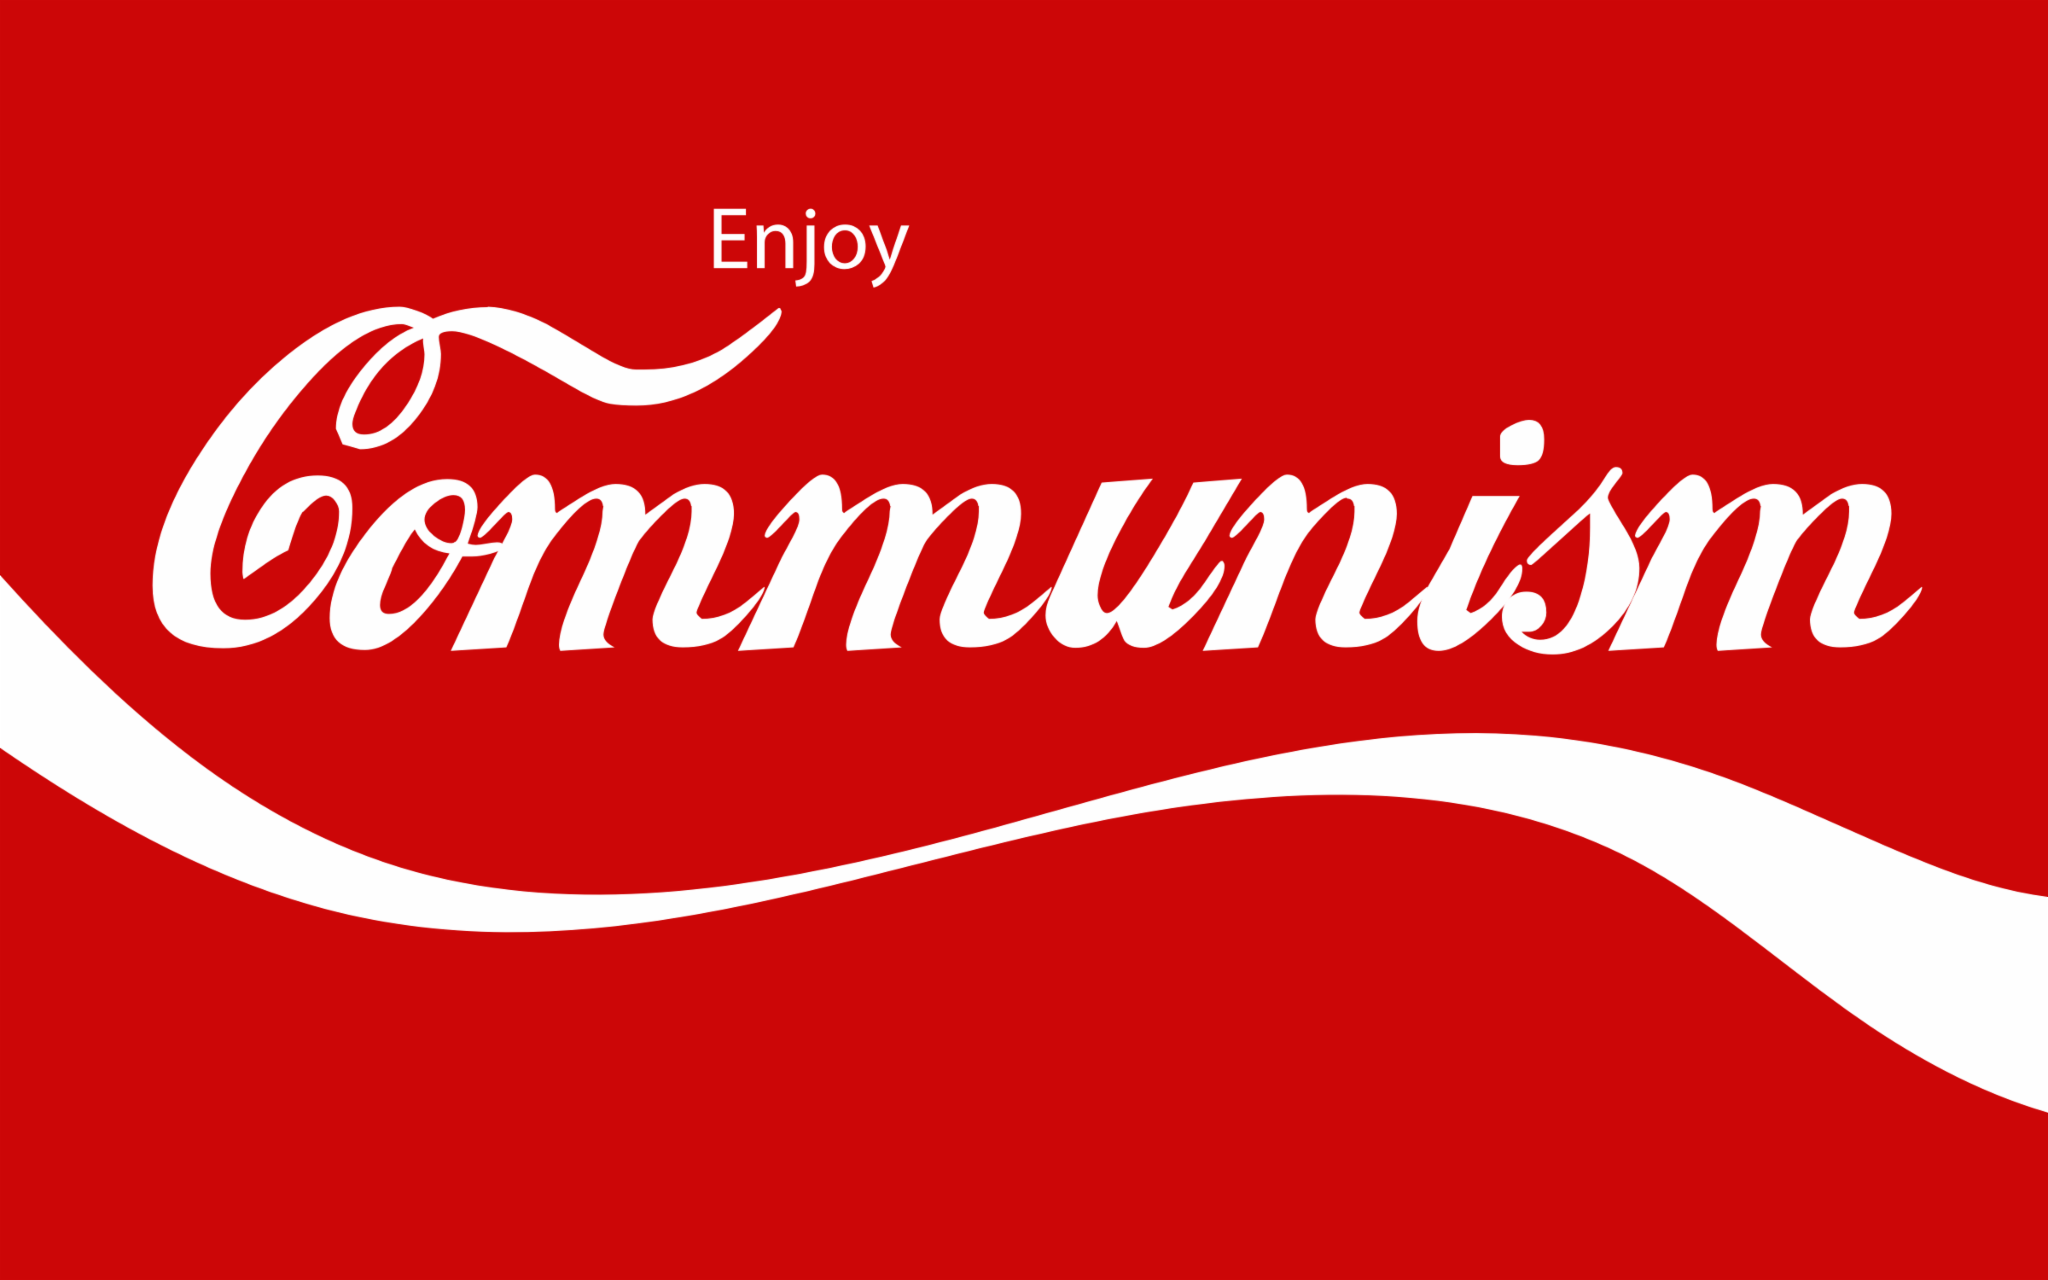 Thoughts on communism?